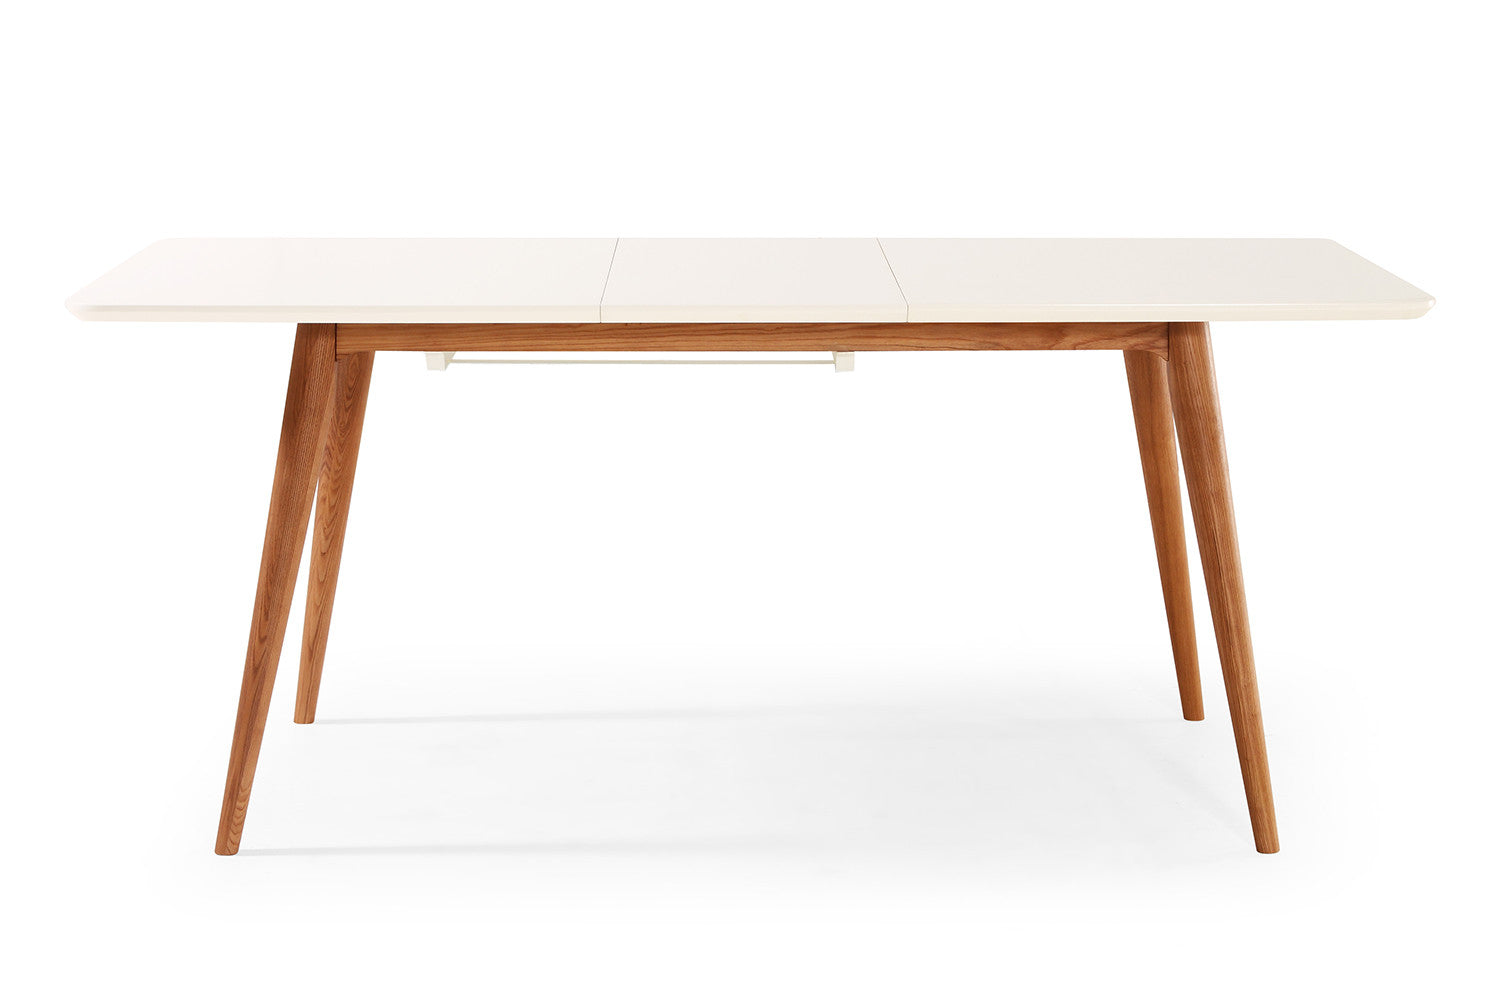 Table de salle manger extensible scandinave wyna dewarens for Table de salle a manger fermiere